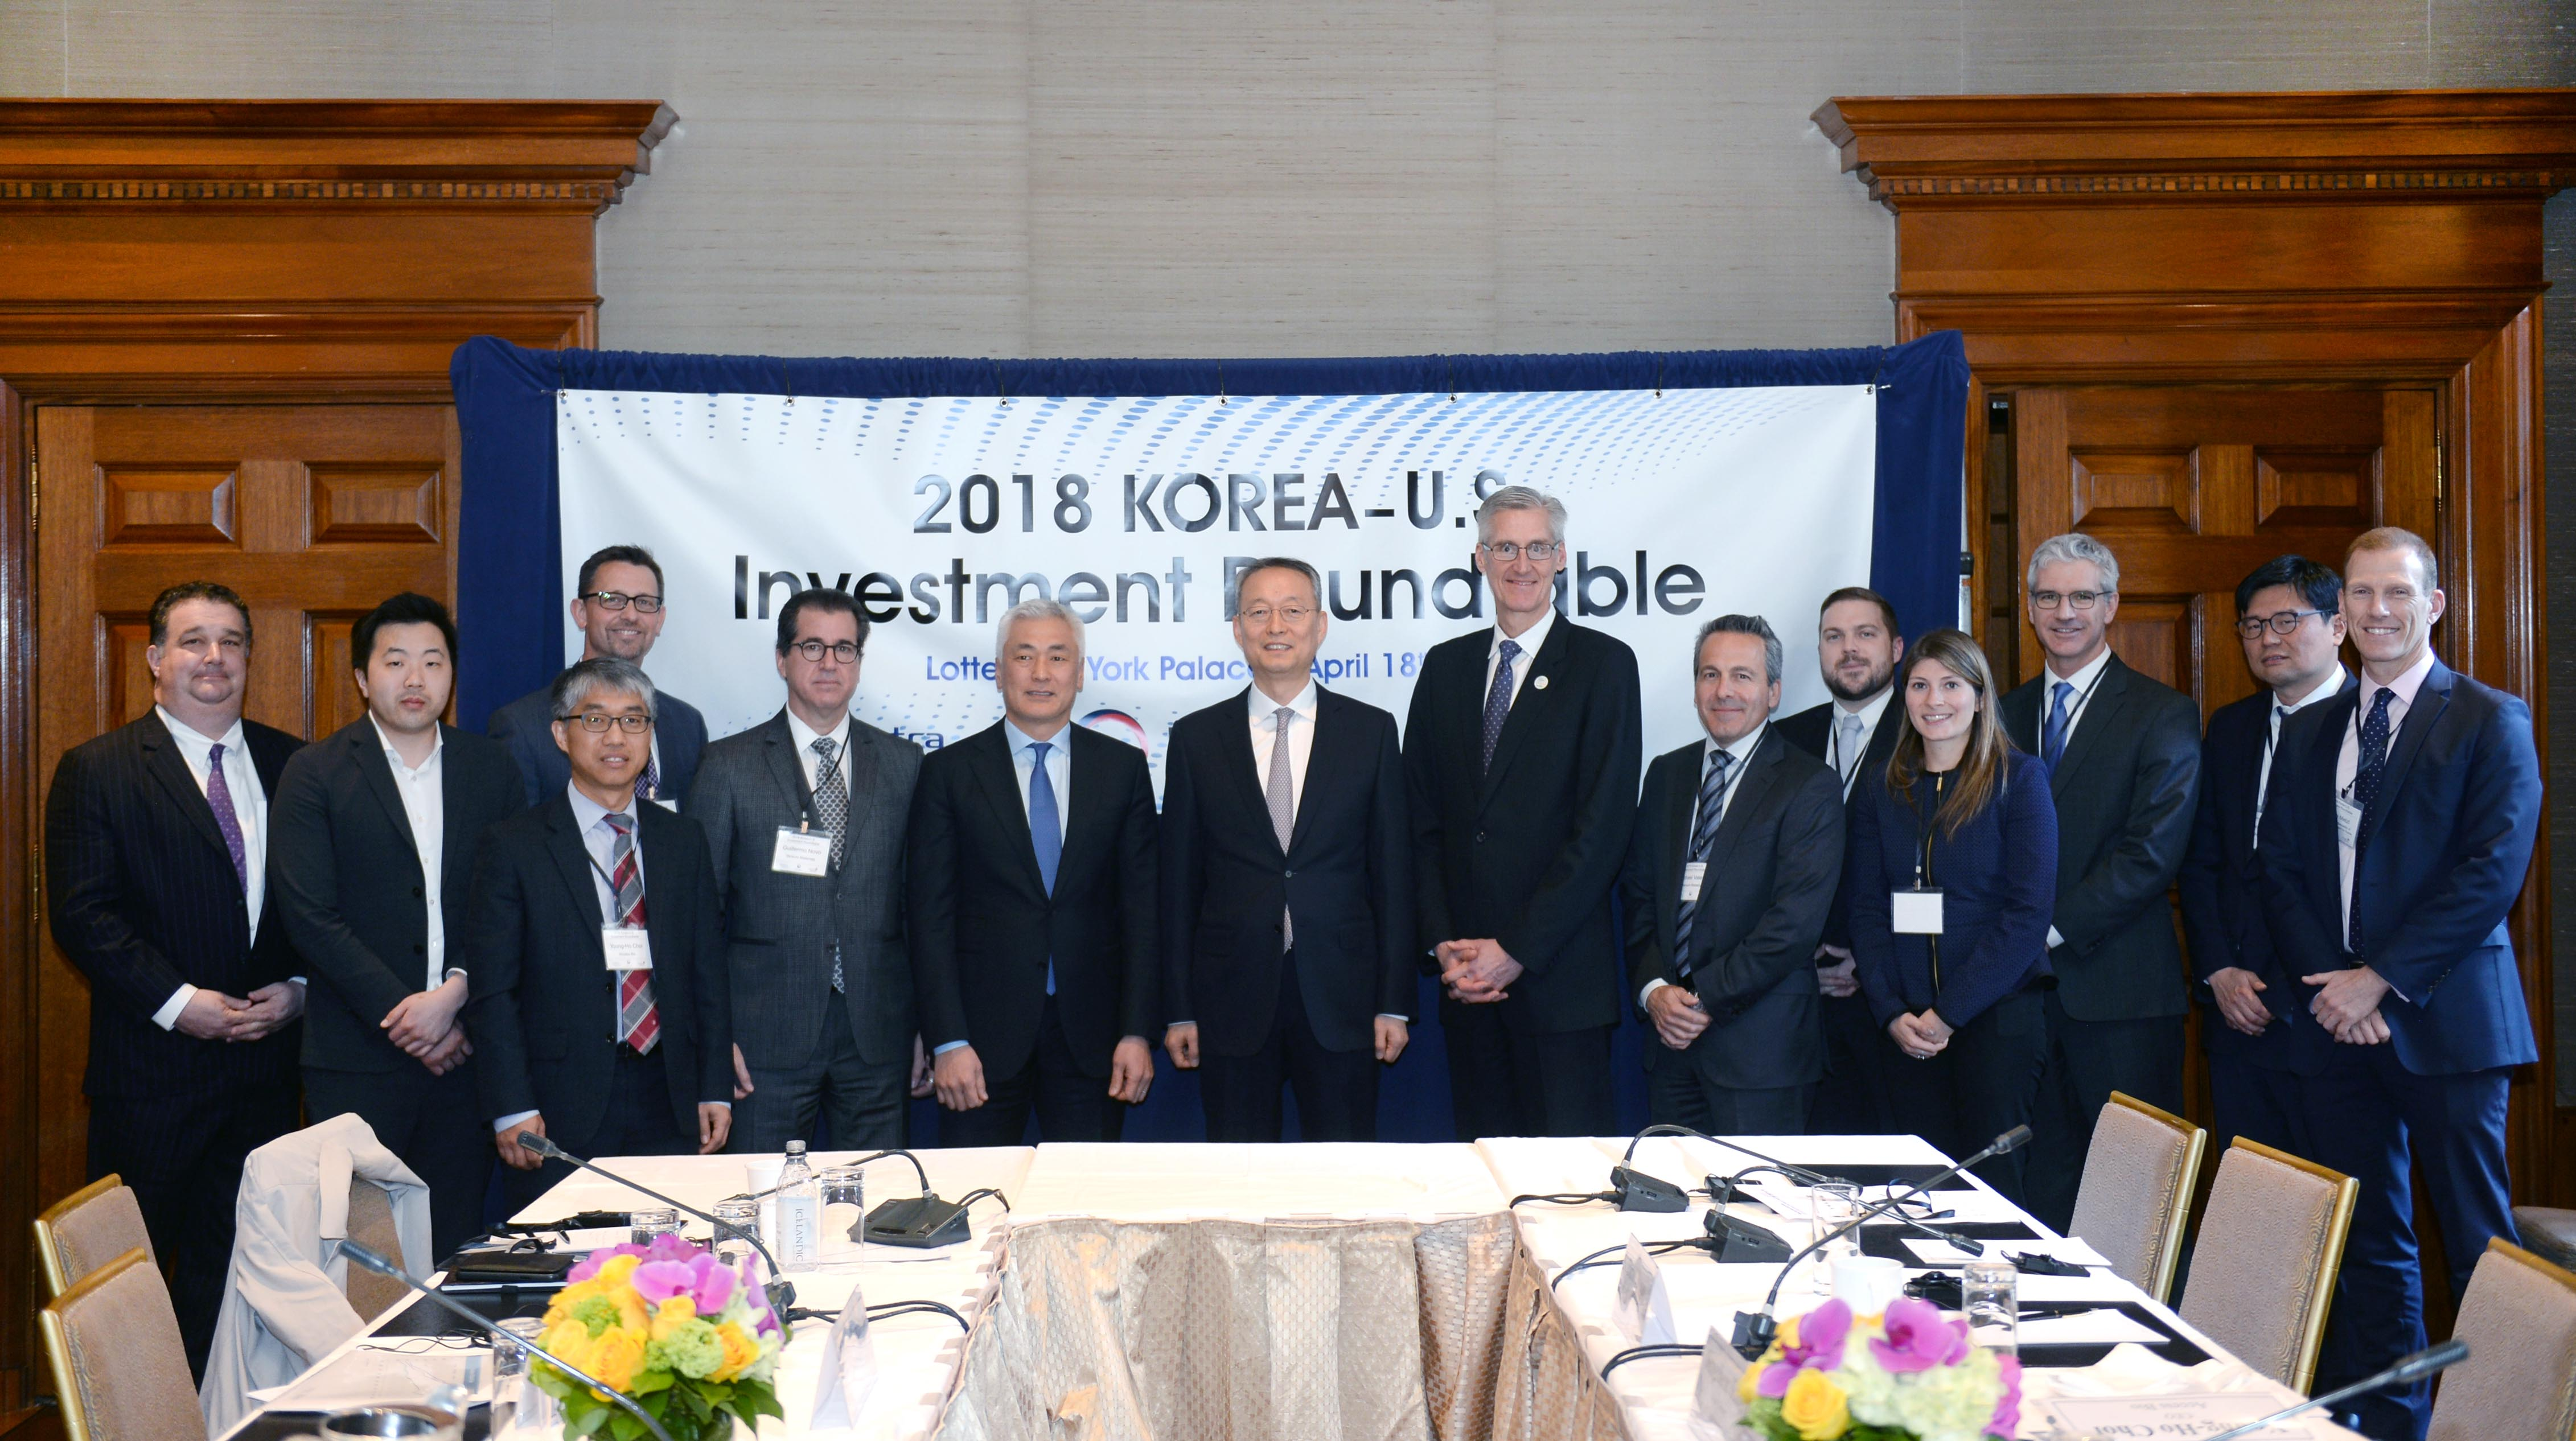 Minister Paik presides over investment roundtable in New York Image 0